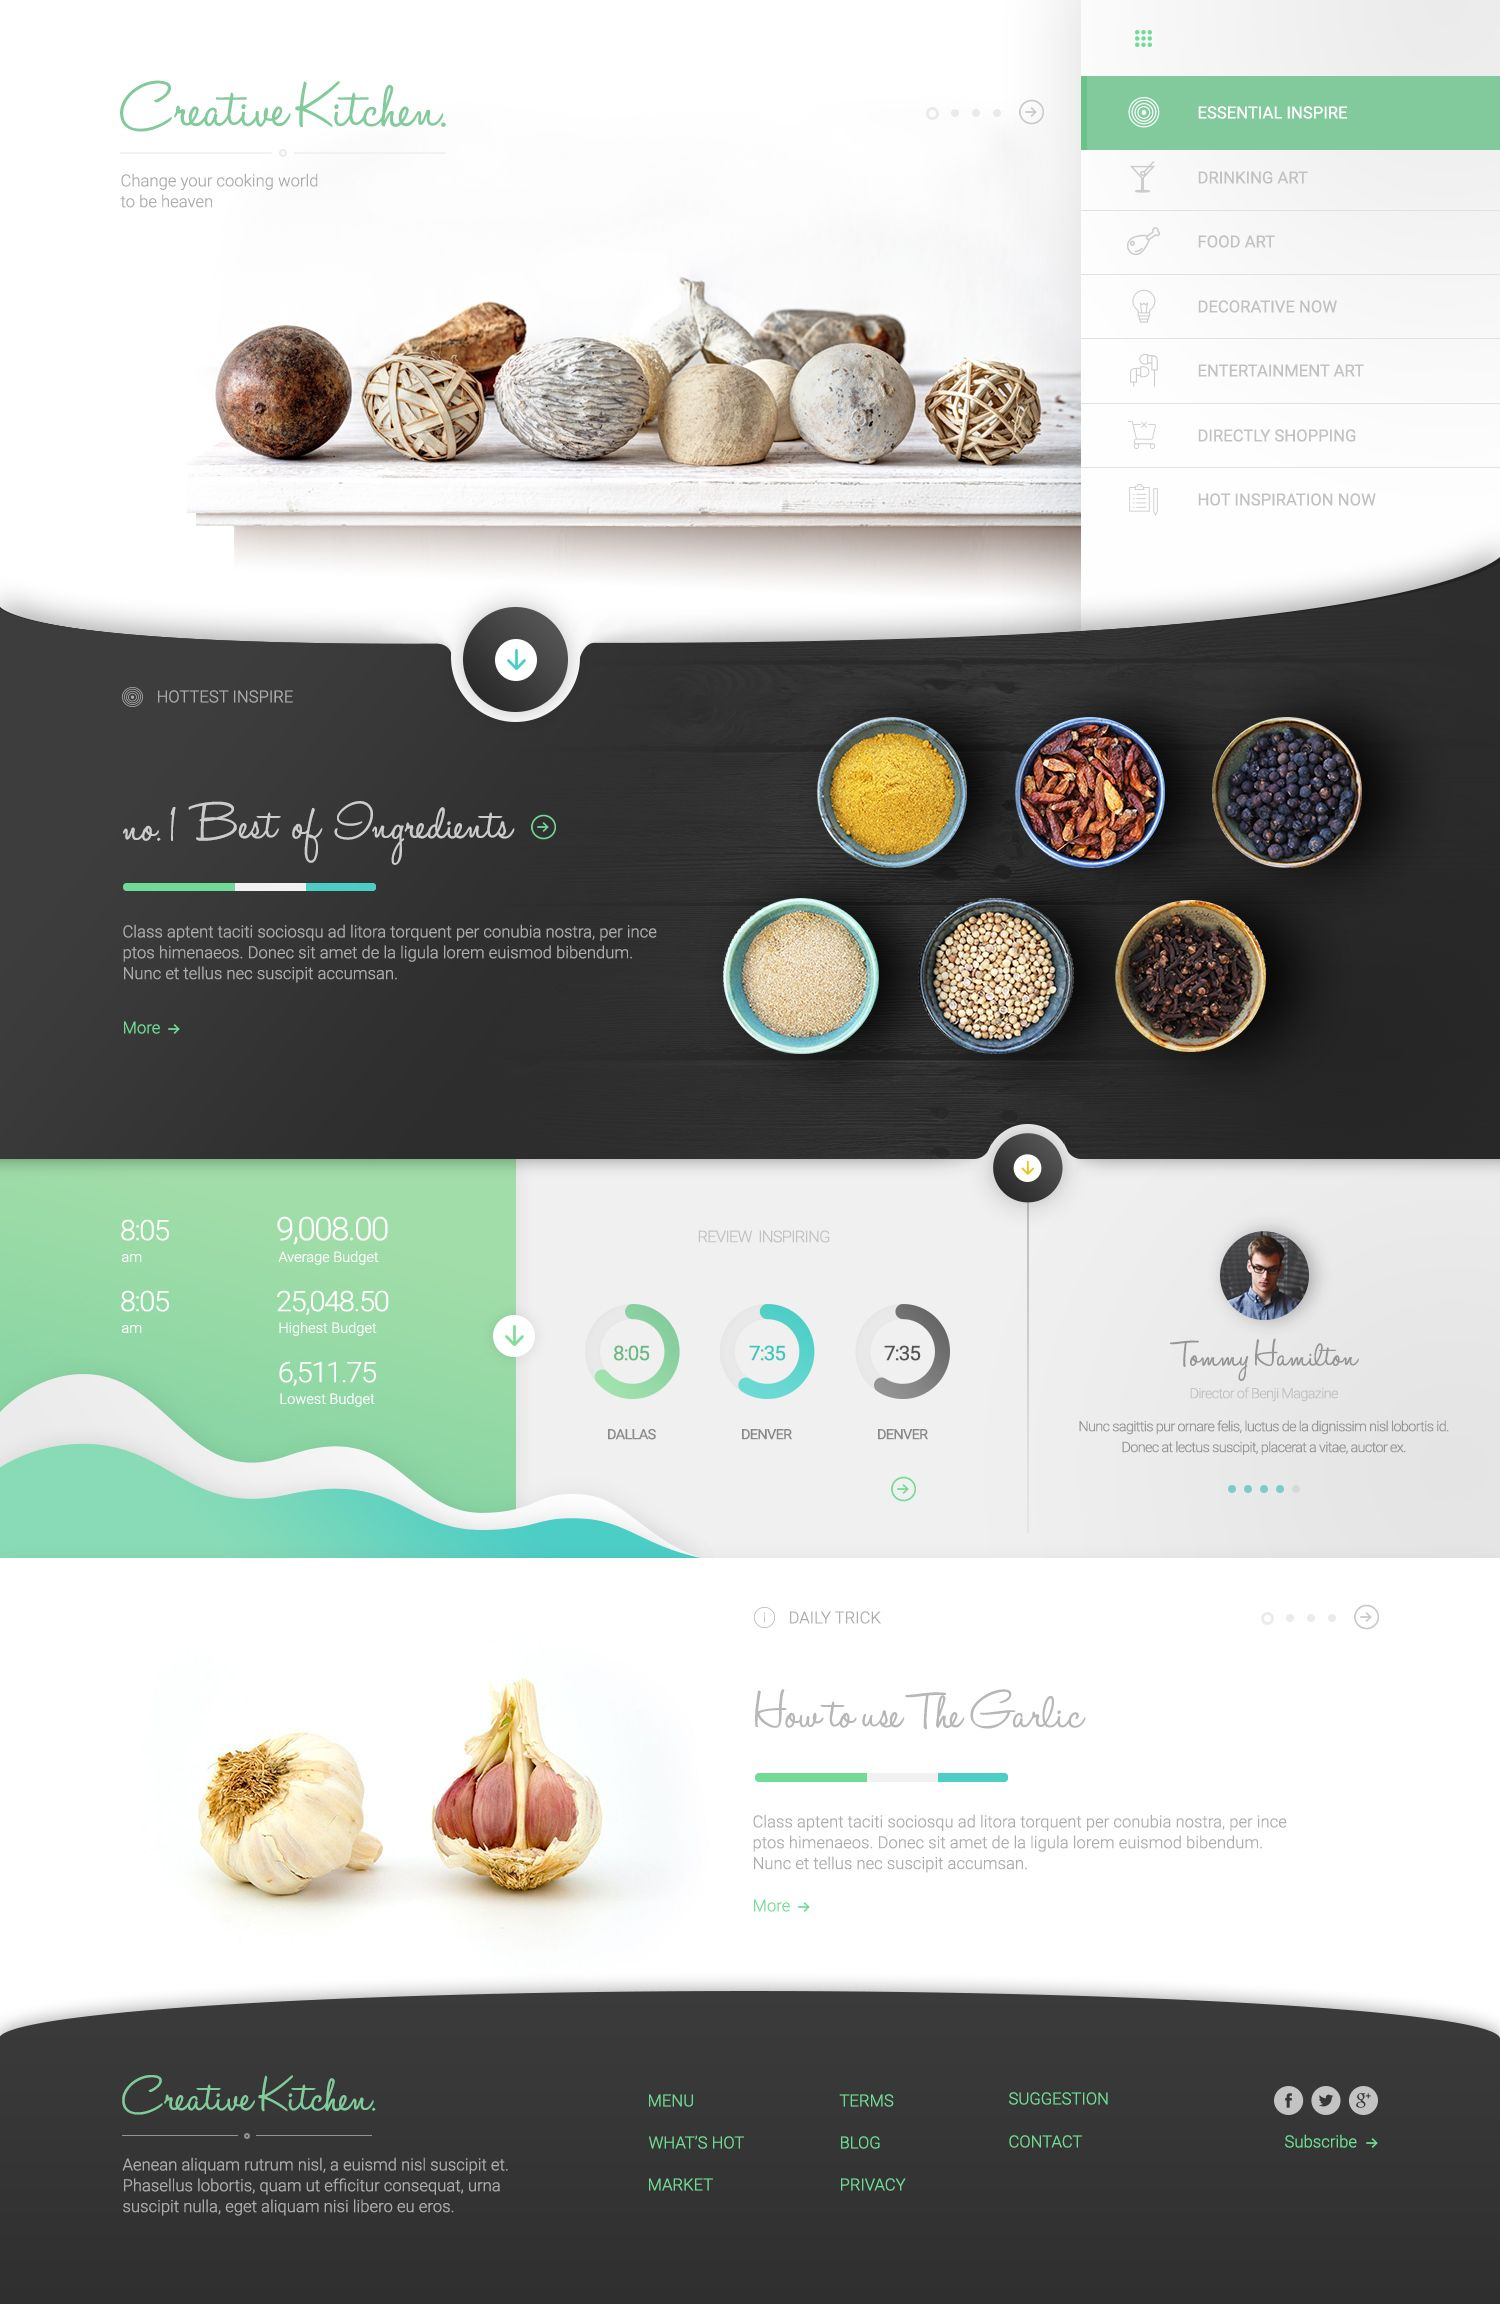 creative kitchen outstanding web design pinterest web design rh pinterest com